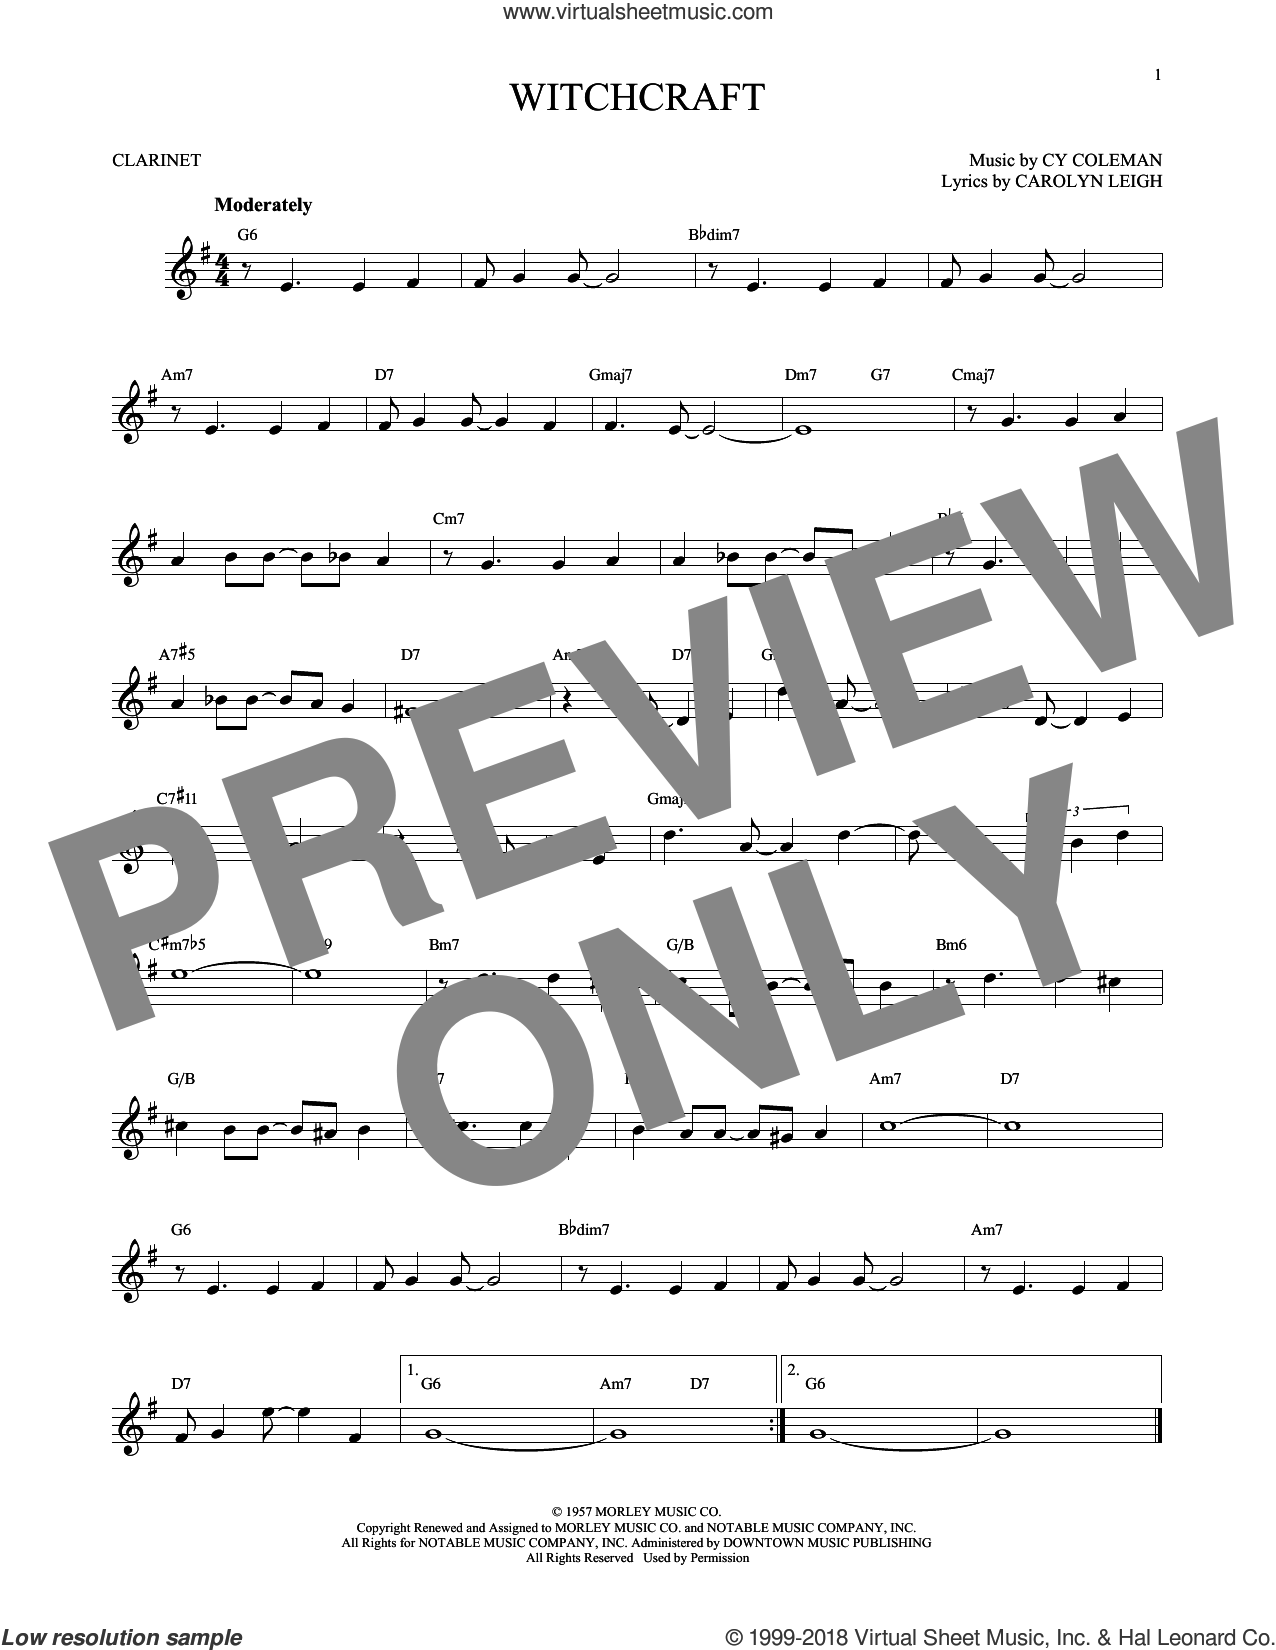 Witchcraft sheet music for clarinet solo by Cy Coleman and Carolyn Leigh, intermediate skill level